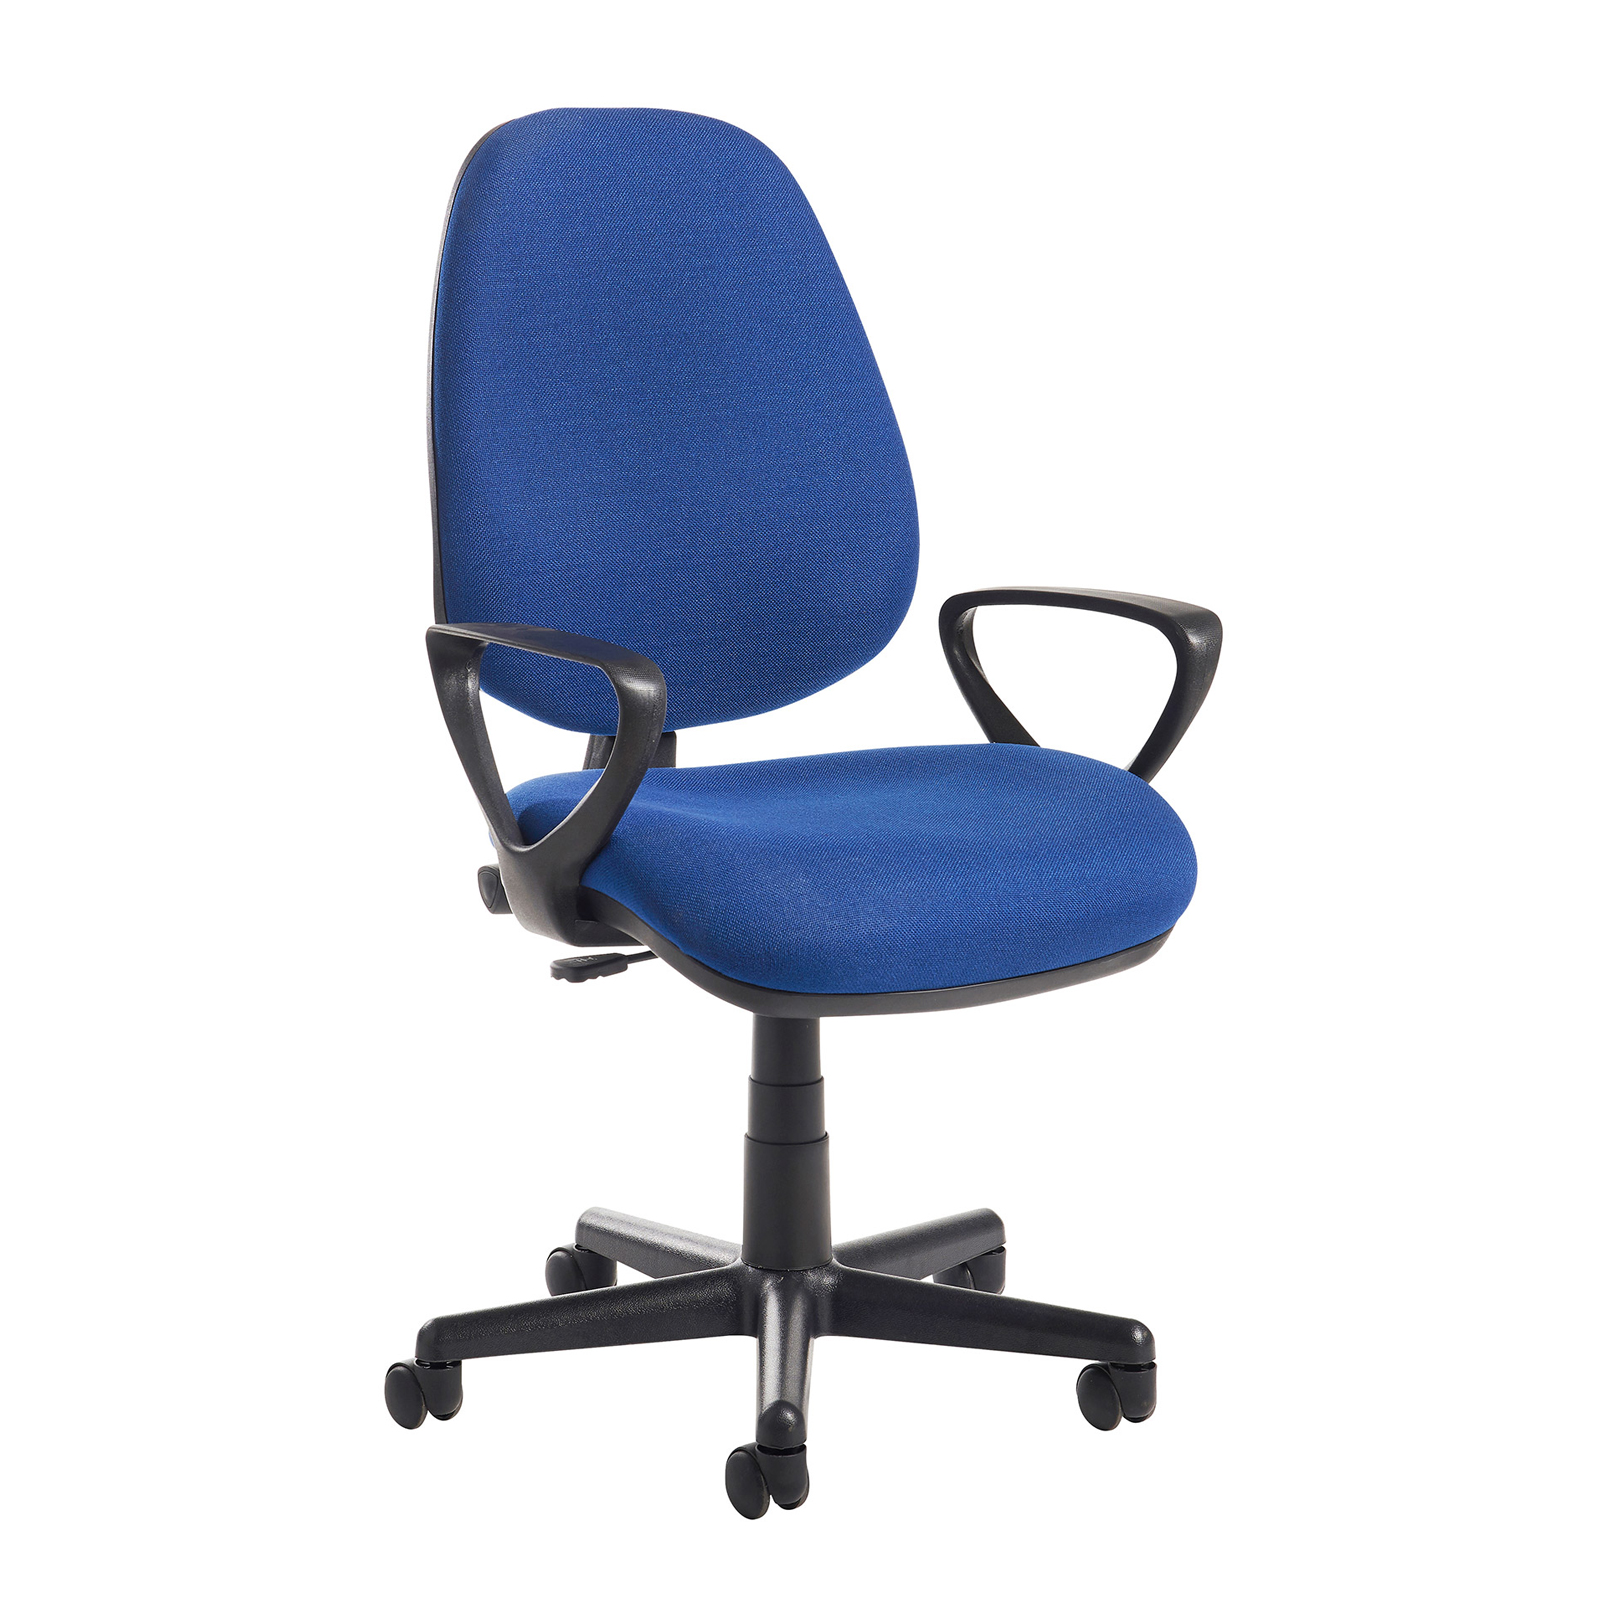 Desk Chairs Bilbao fabric operators chair